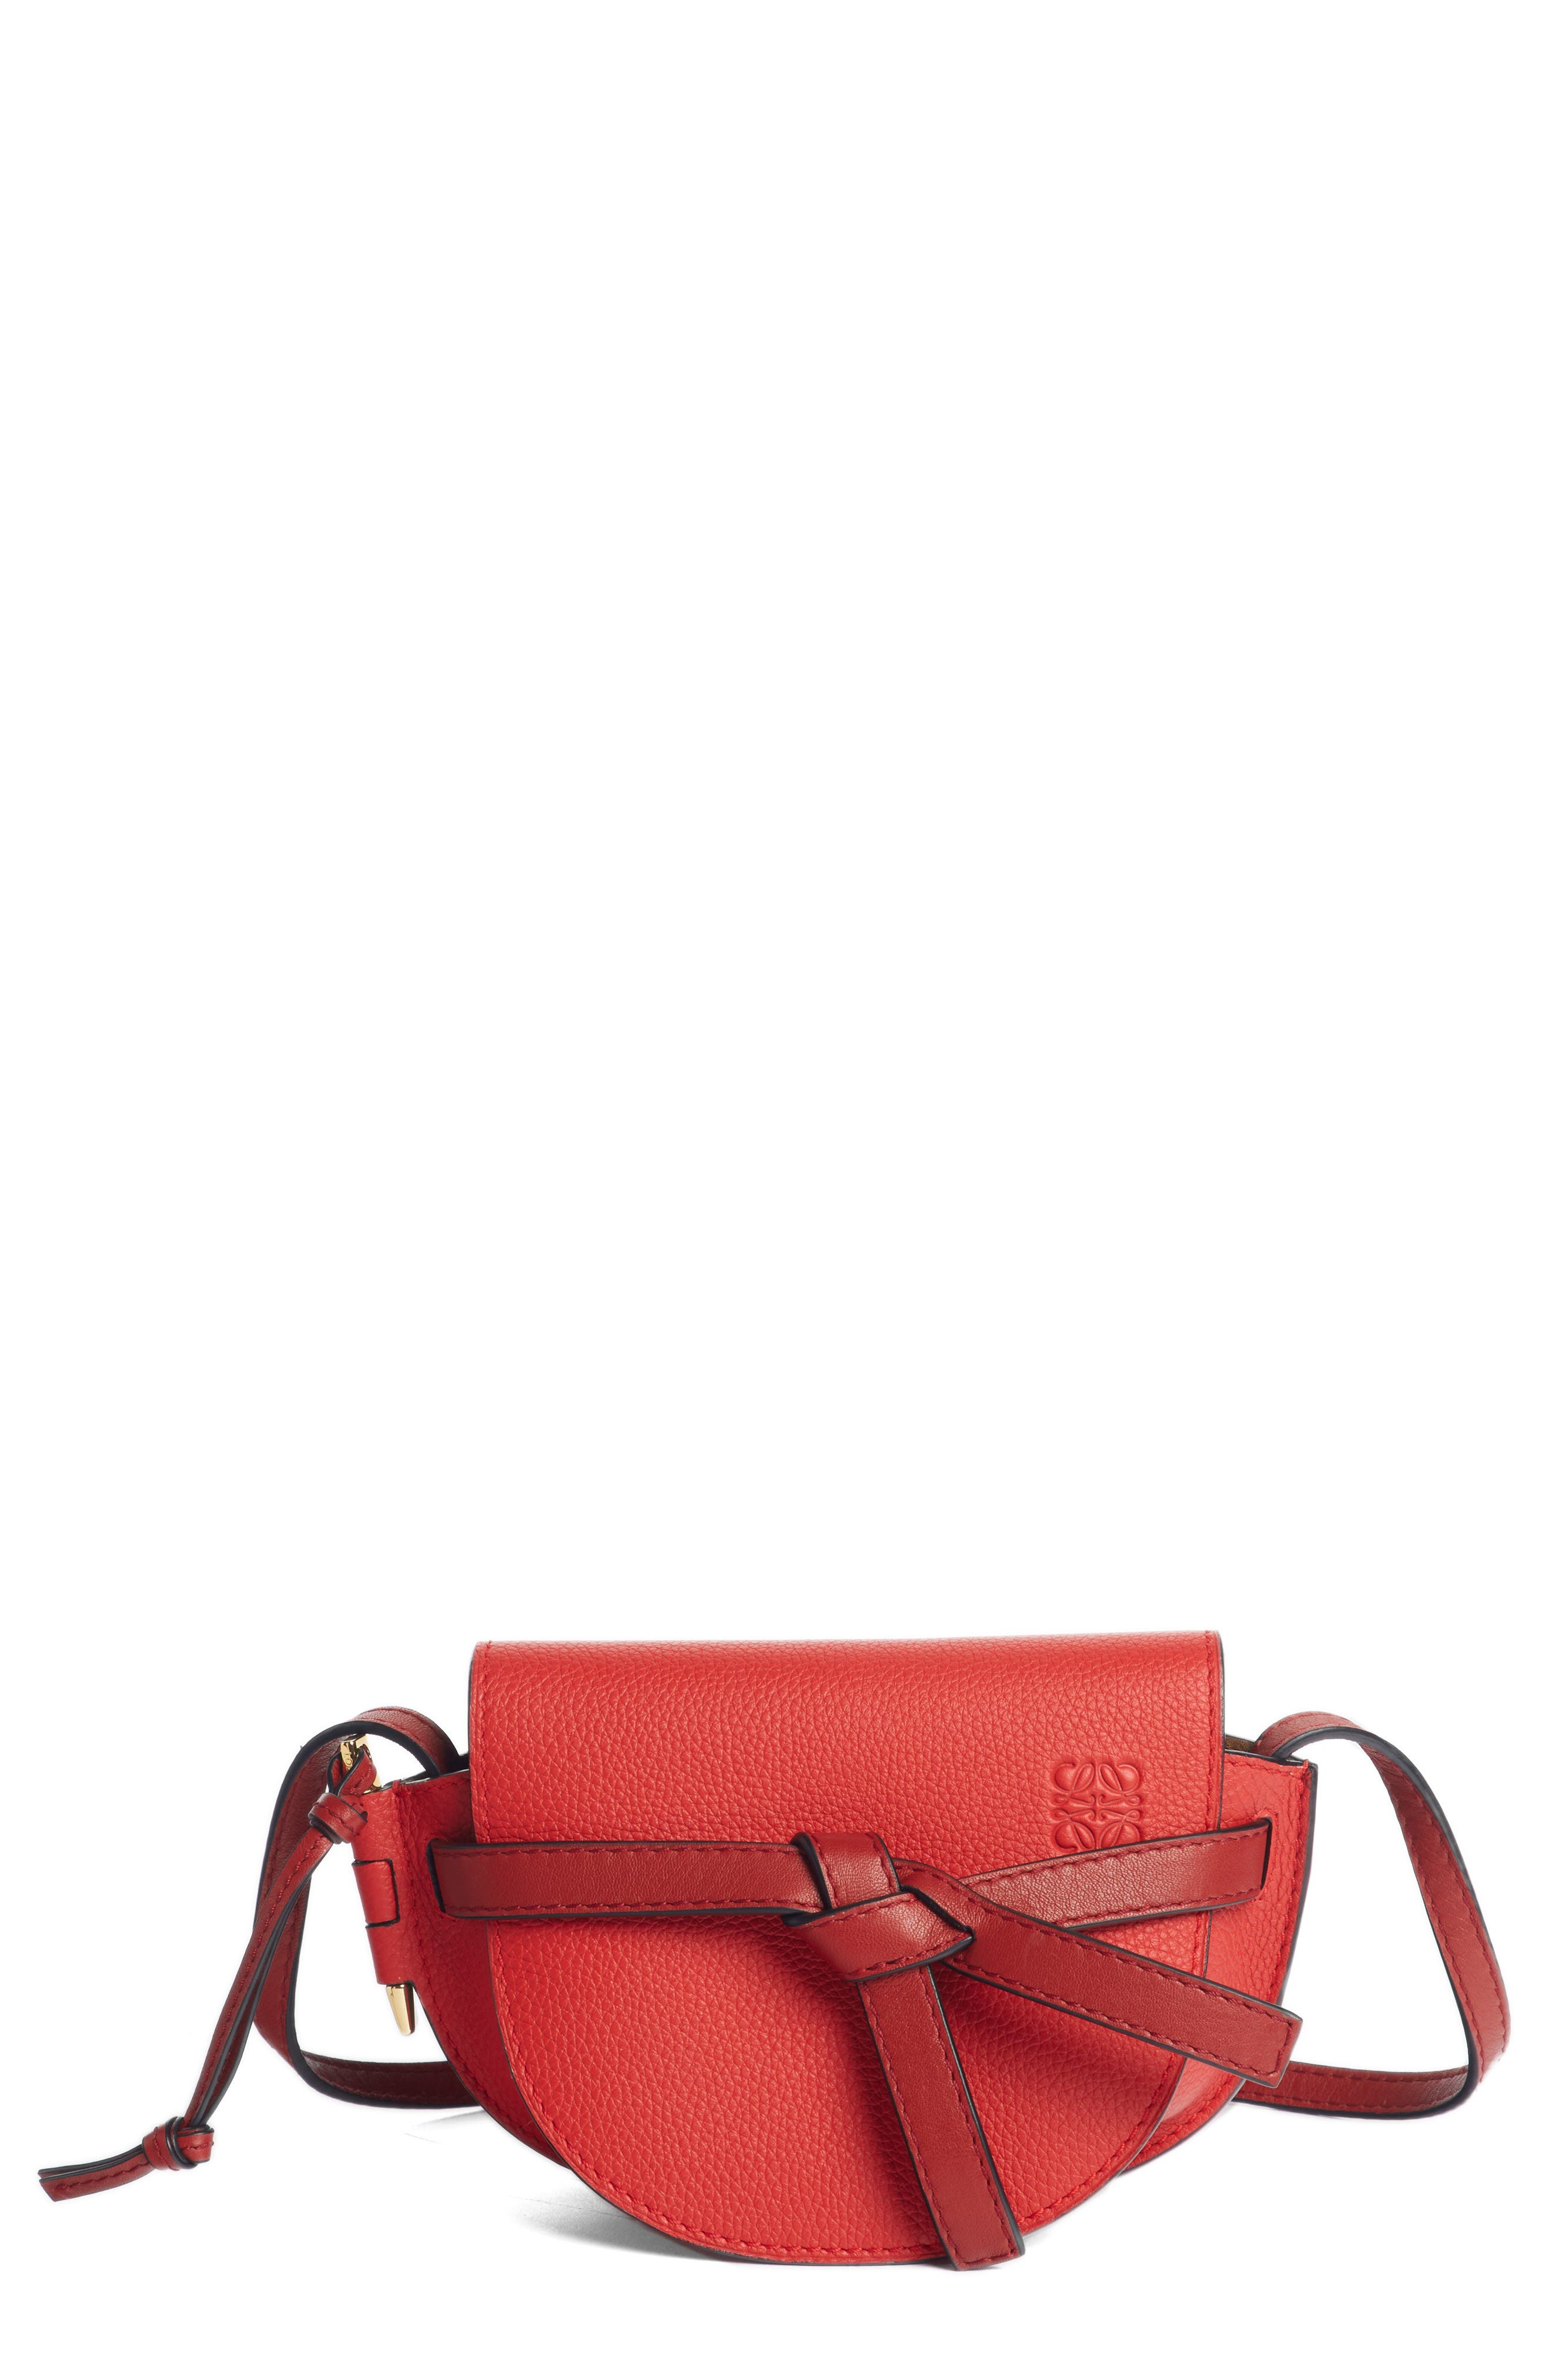 Small Gate Leather Crossbody Bag,                             Main thumbnail 1, color,                             SCARLET RED/ BURNT RED